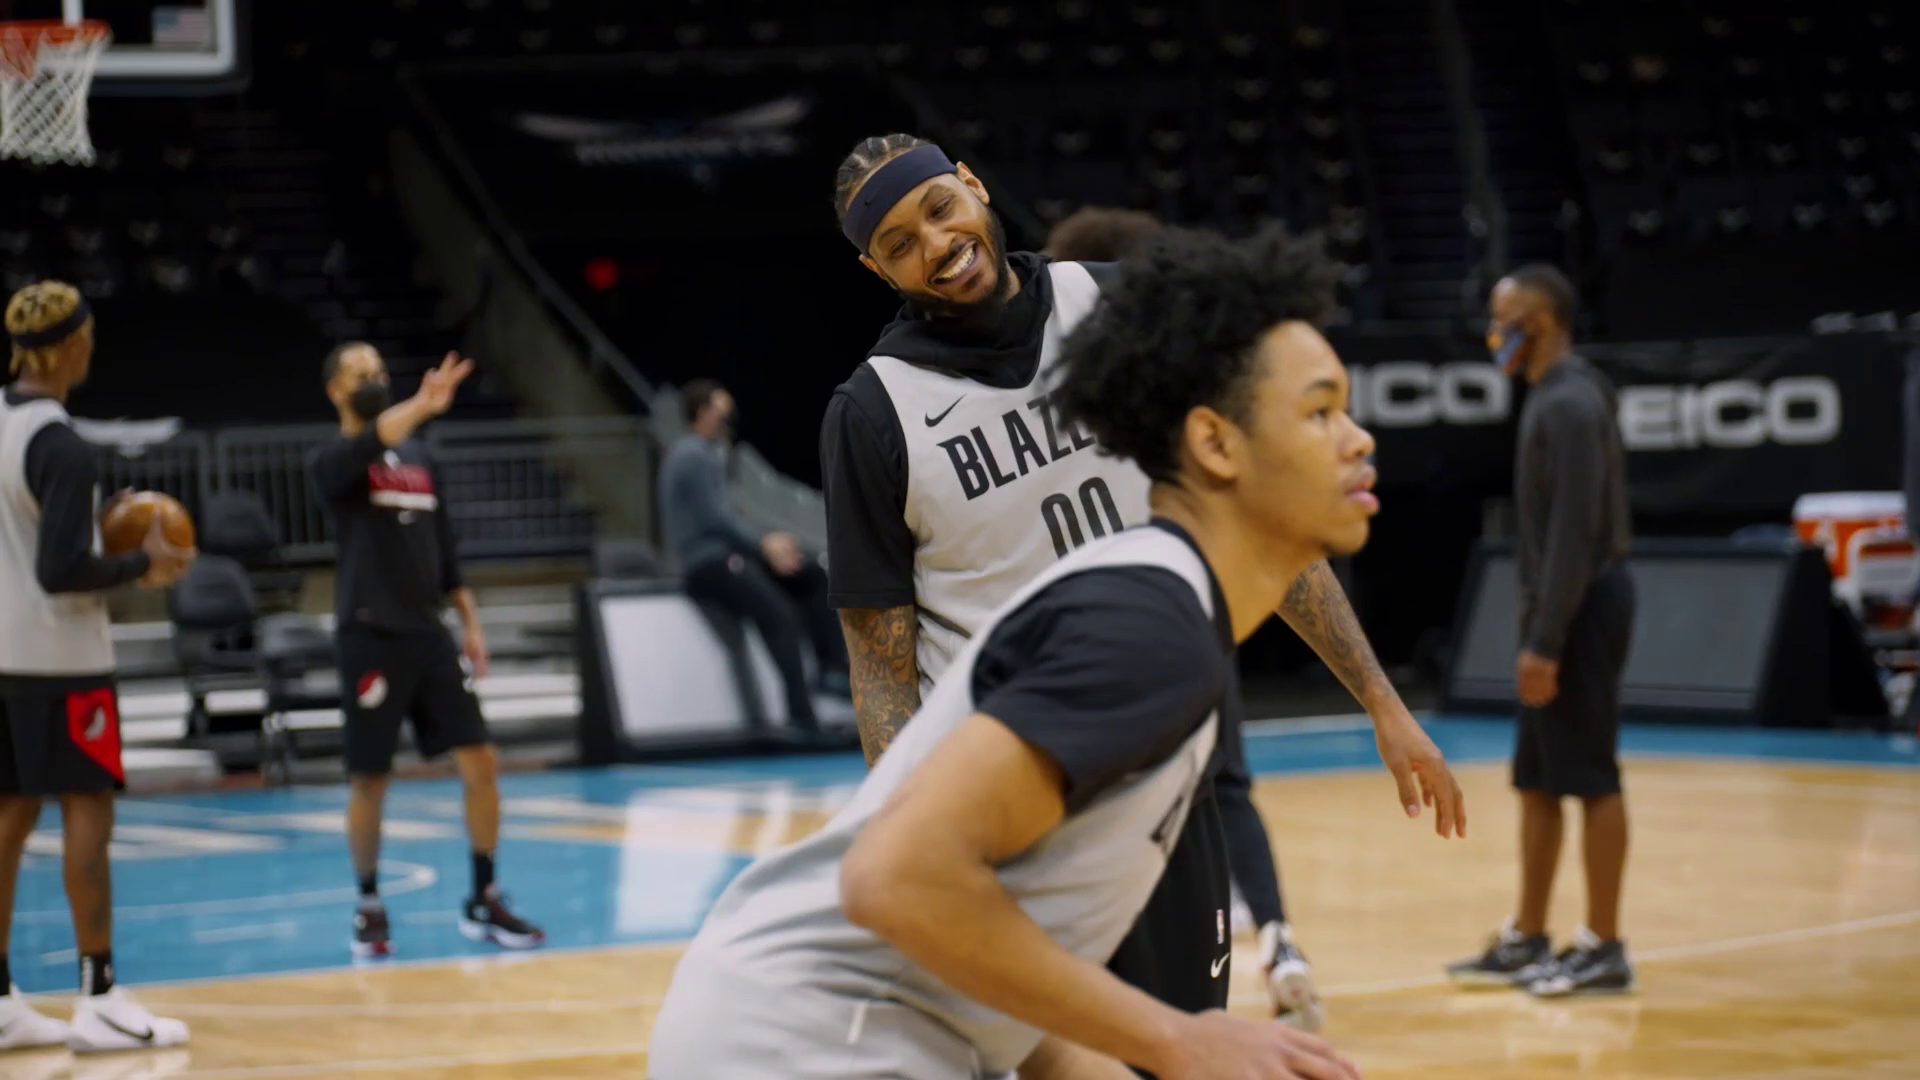 Carmelo Enjoys a Friendly Shooting Contest with his Teammates